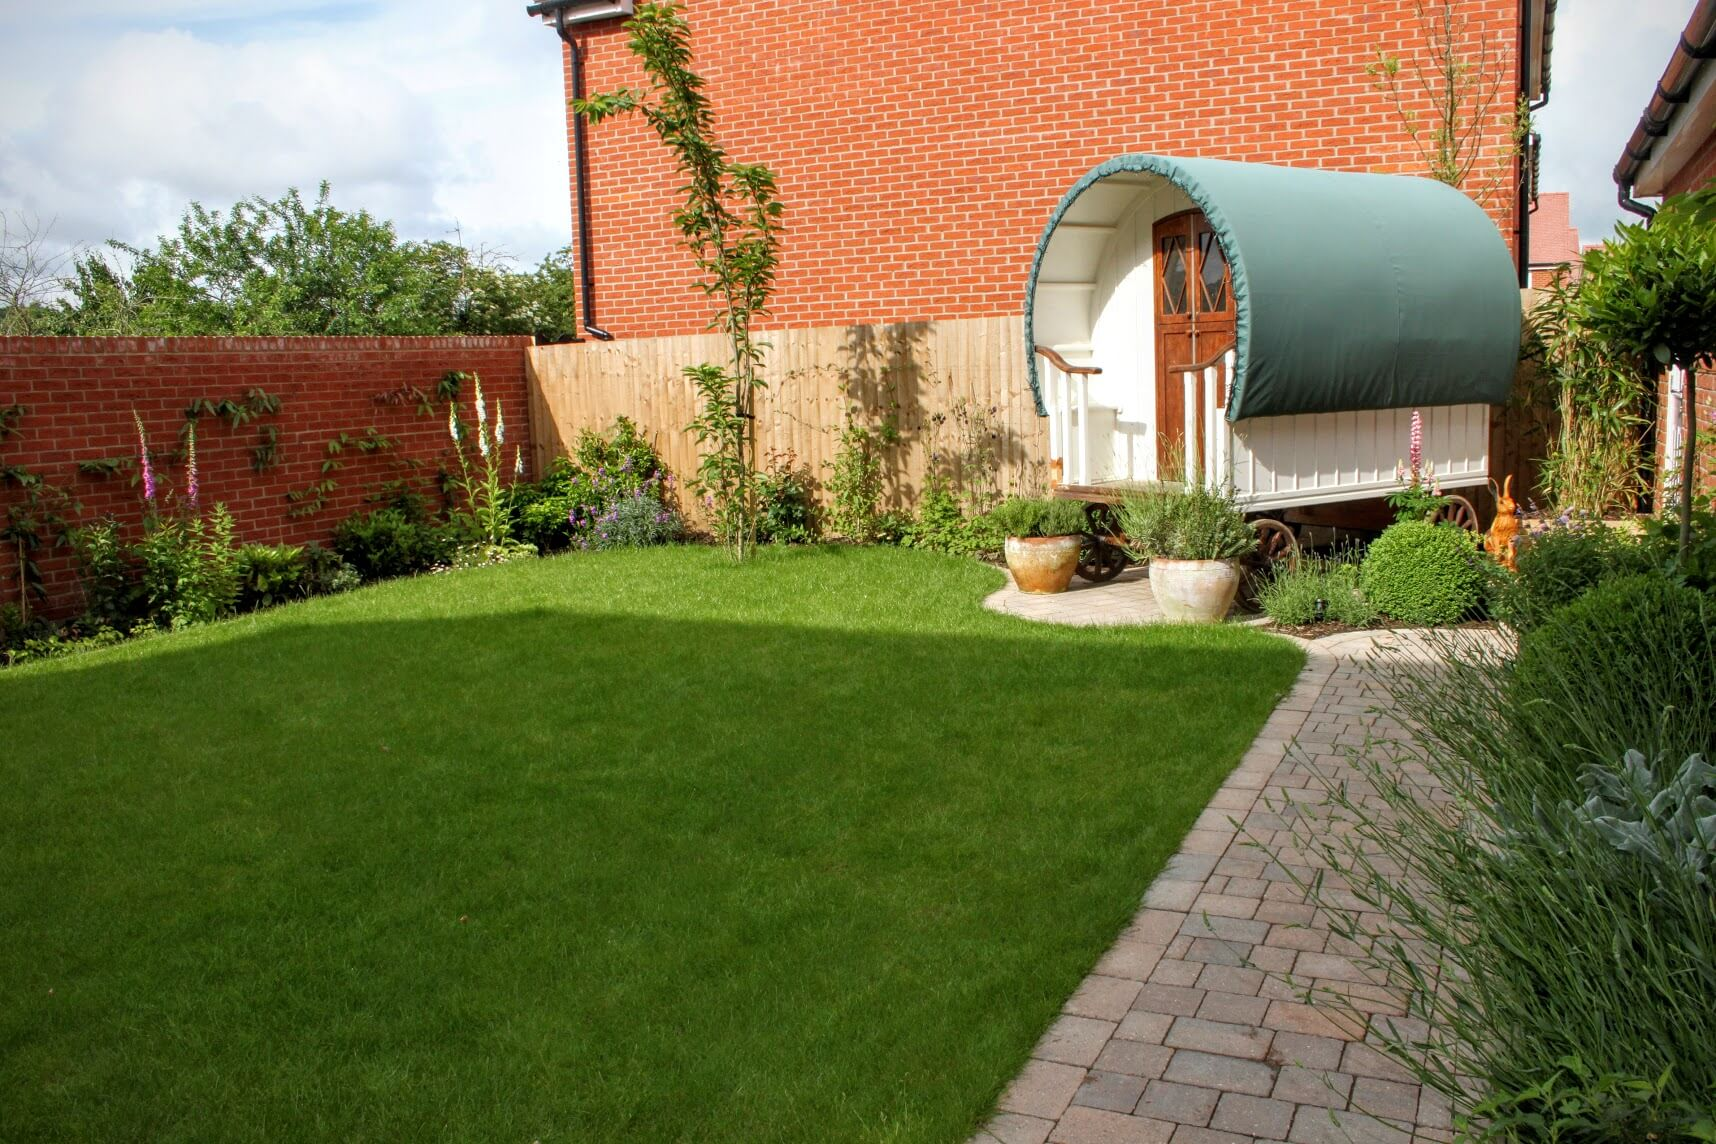 New House Backyard Design : New Garden Design for a Brand New House and Caravan  Oxford Garden